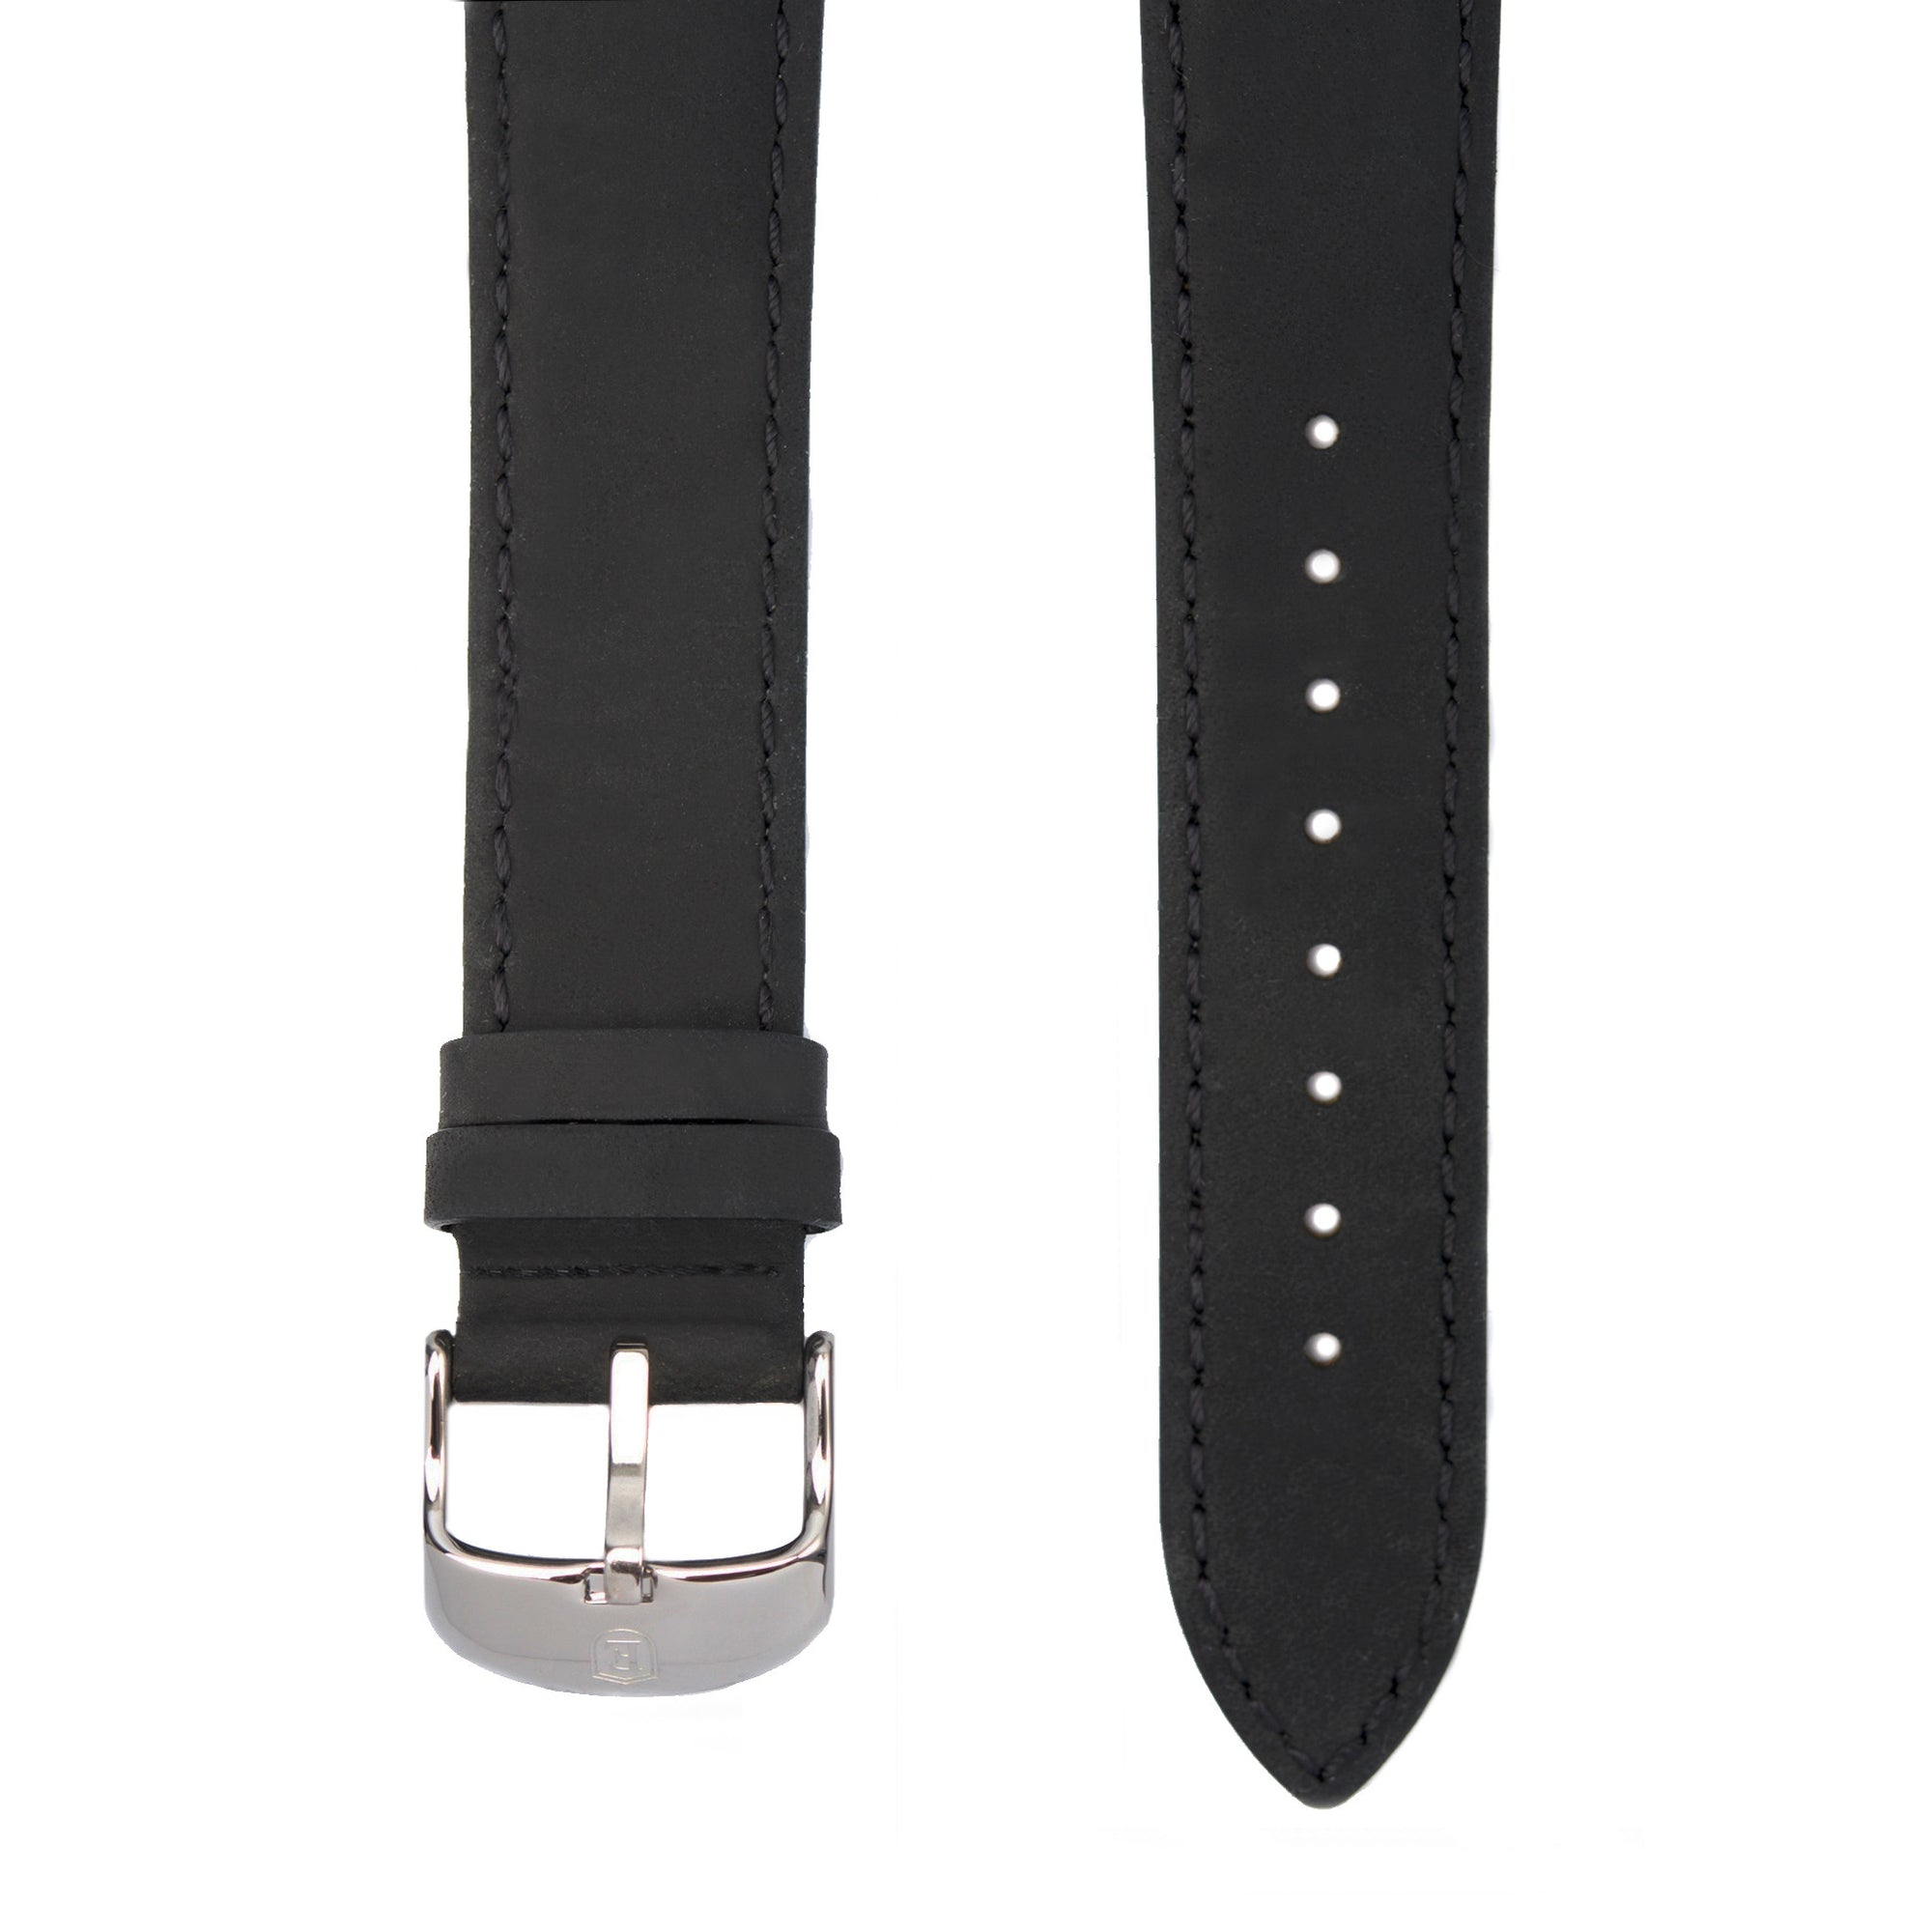 Black Italian Crazy Horse Leather Strap with Stainless Steel Pin Buckle